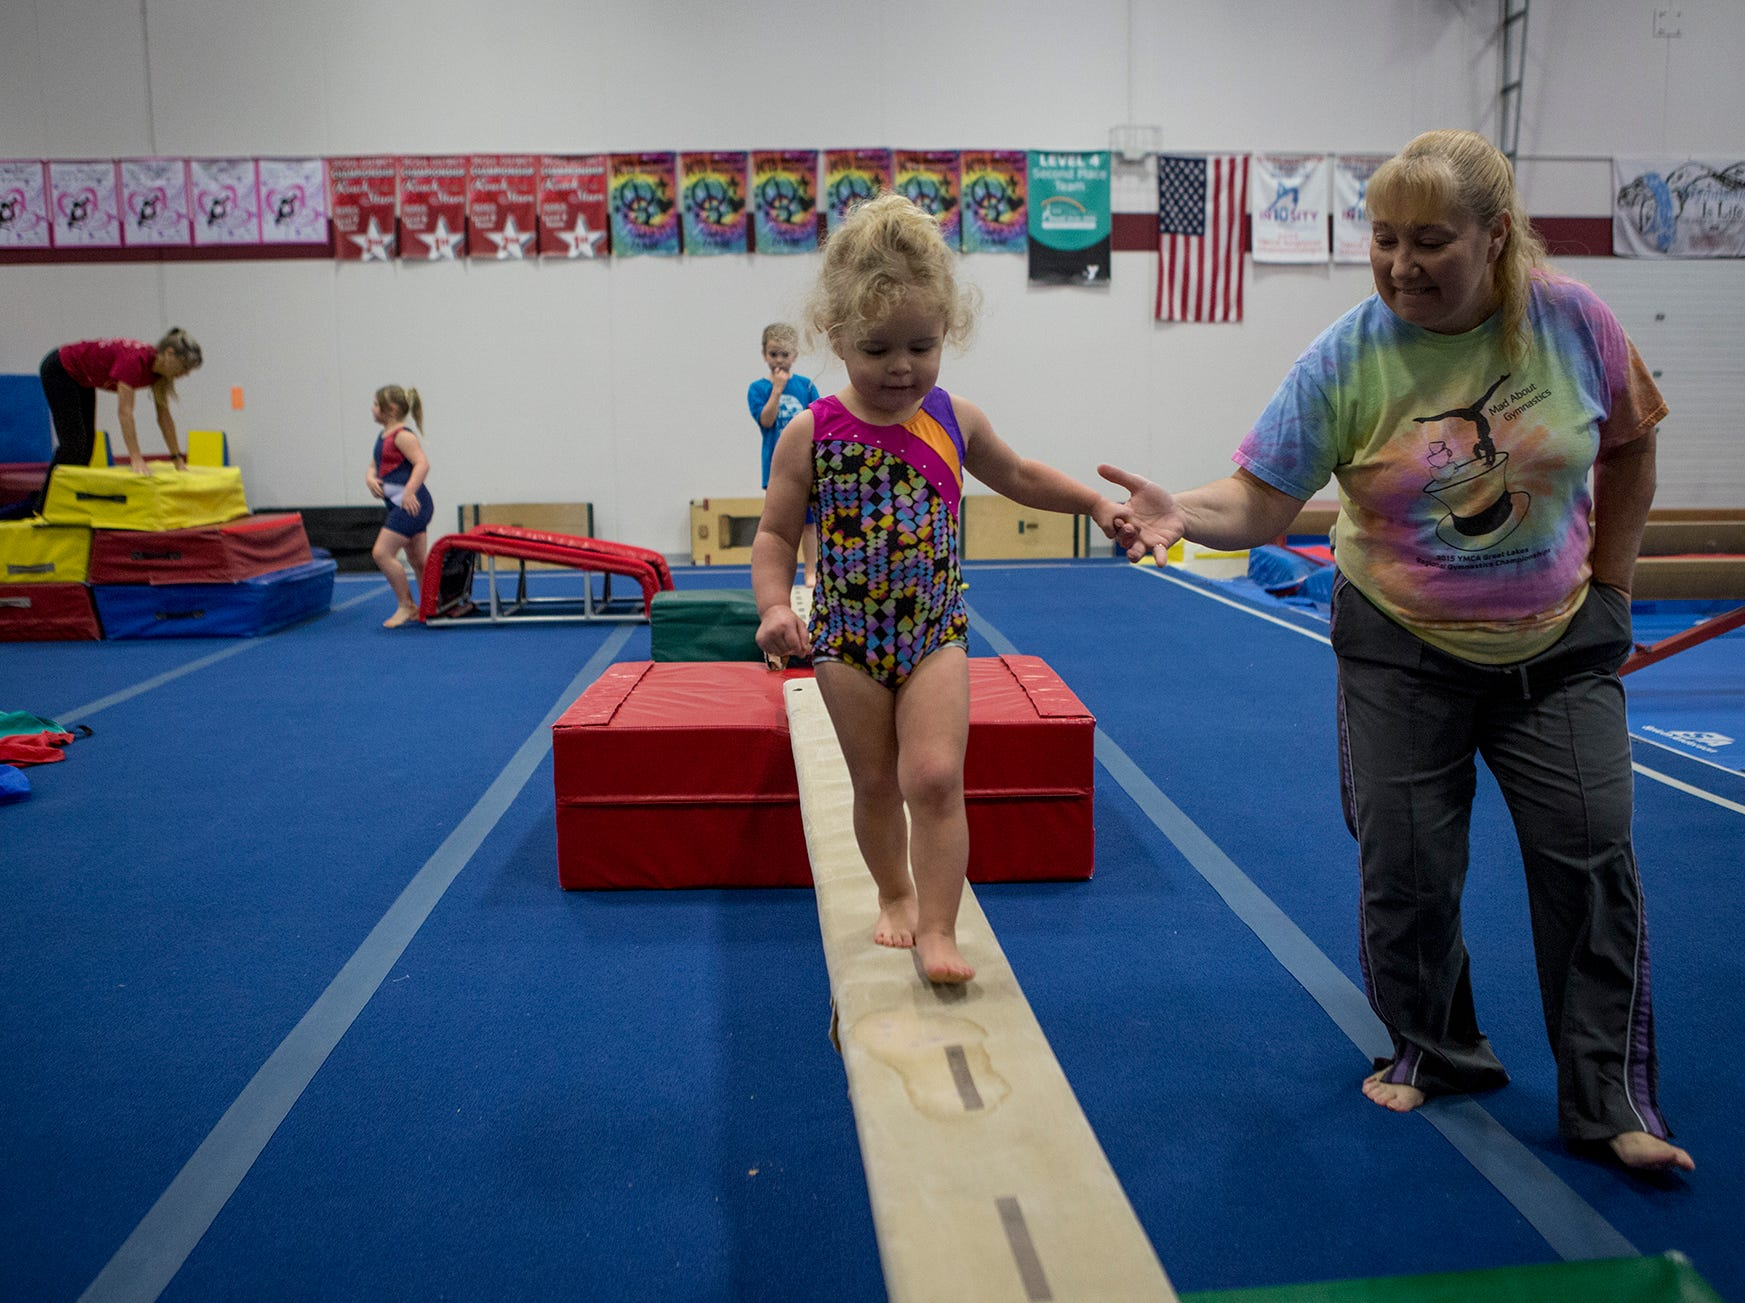 Diane Hodge holds Eva Swick's hand as she makes her way across the balance beam during a preschool open gymnastics class at the Licking County YMCA. The YMCA will be holding a second preschool open gym Friday January 4th in the Mitchell Center. Prices are $15 for members and $25 for nonmembers, ages 3-6.